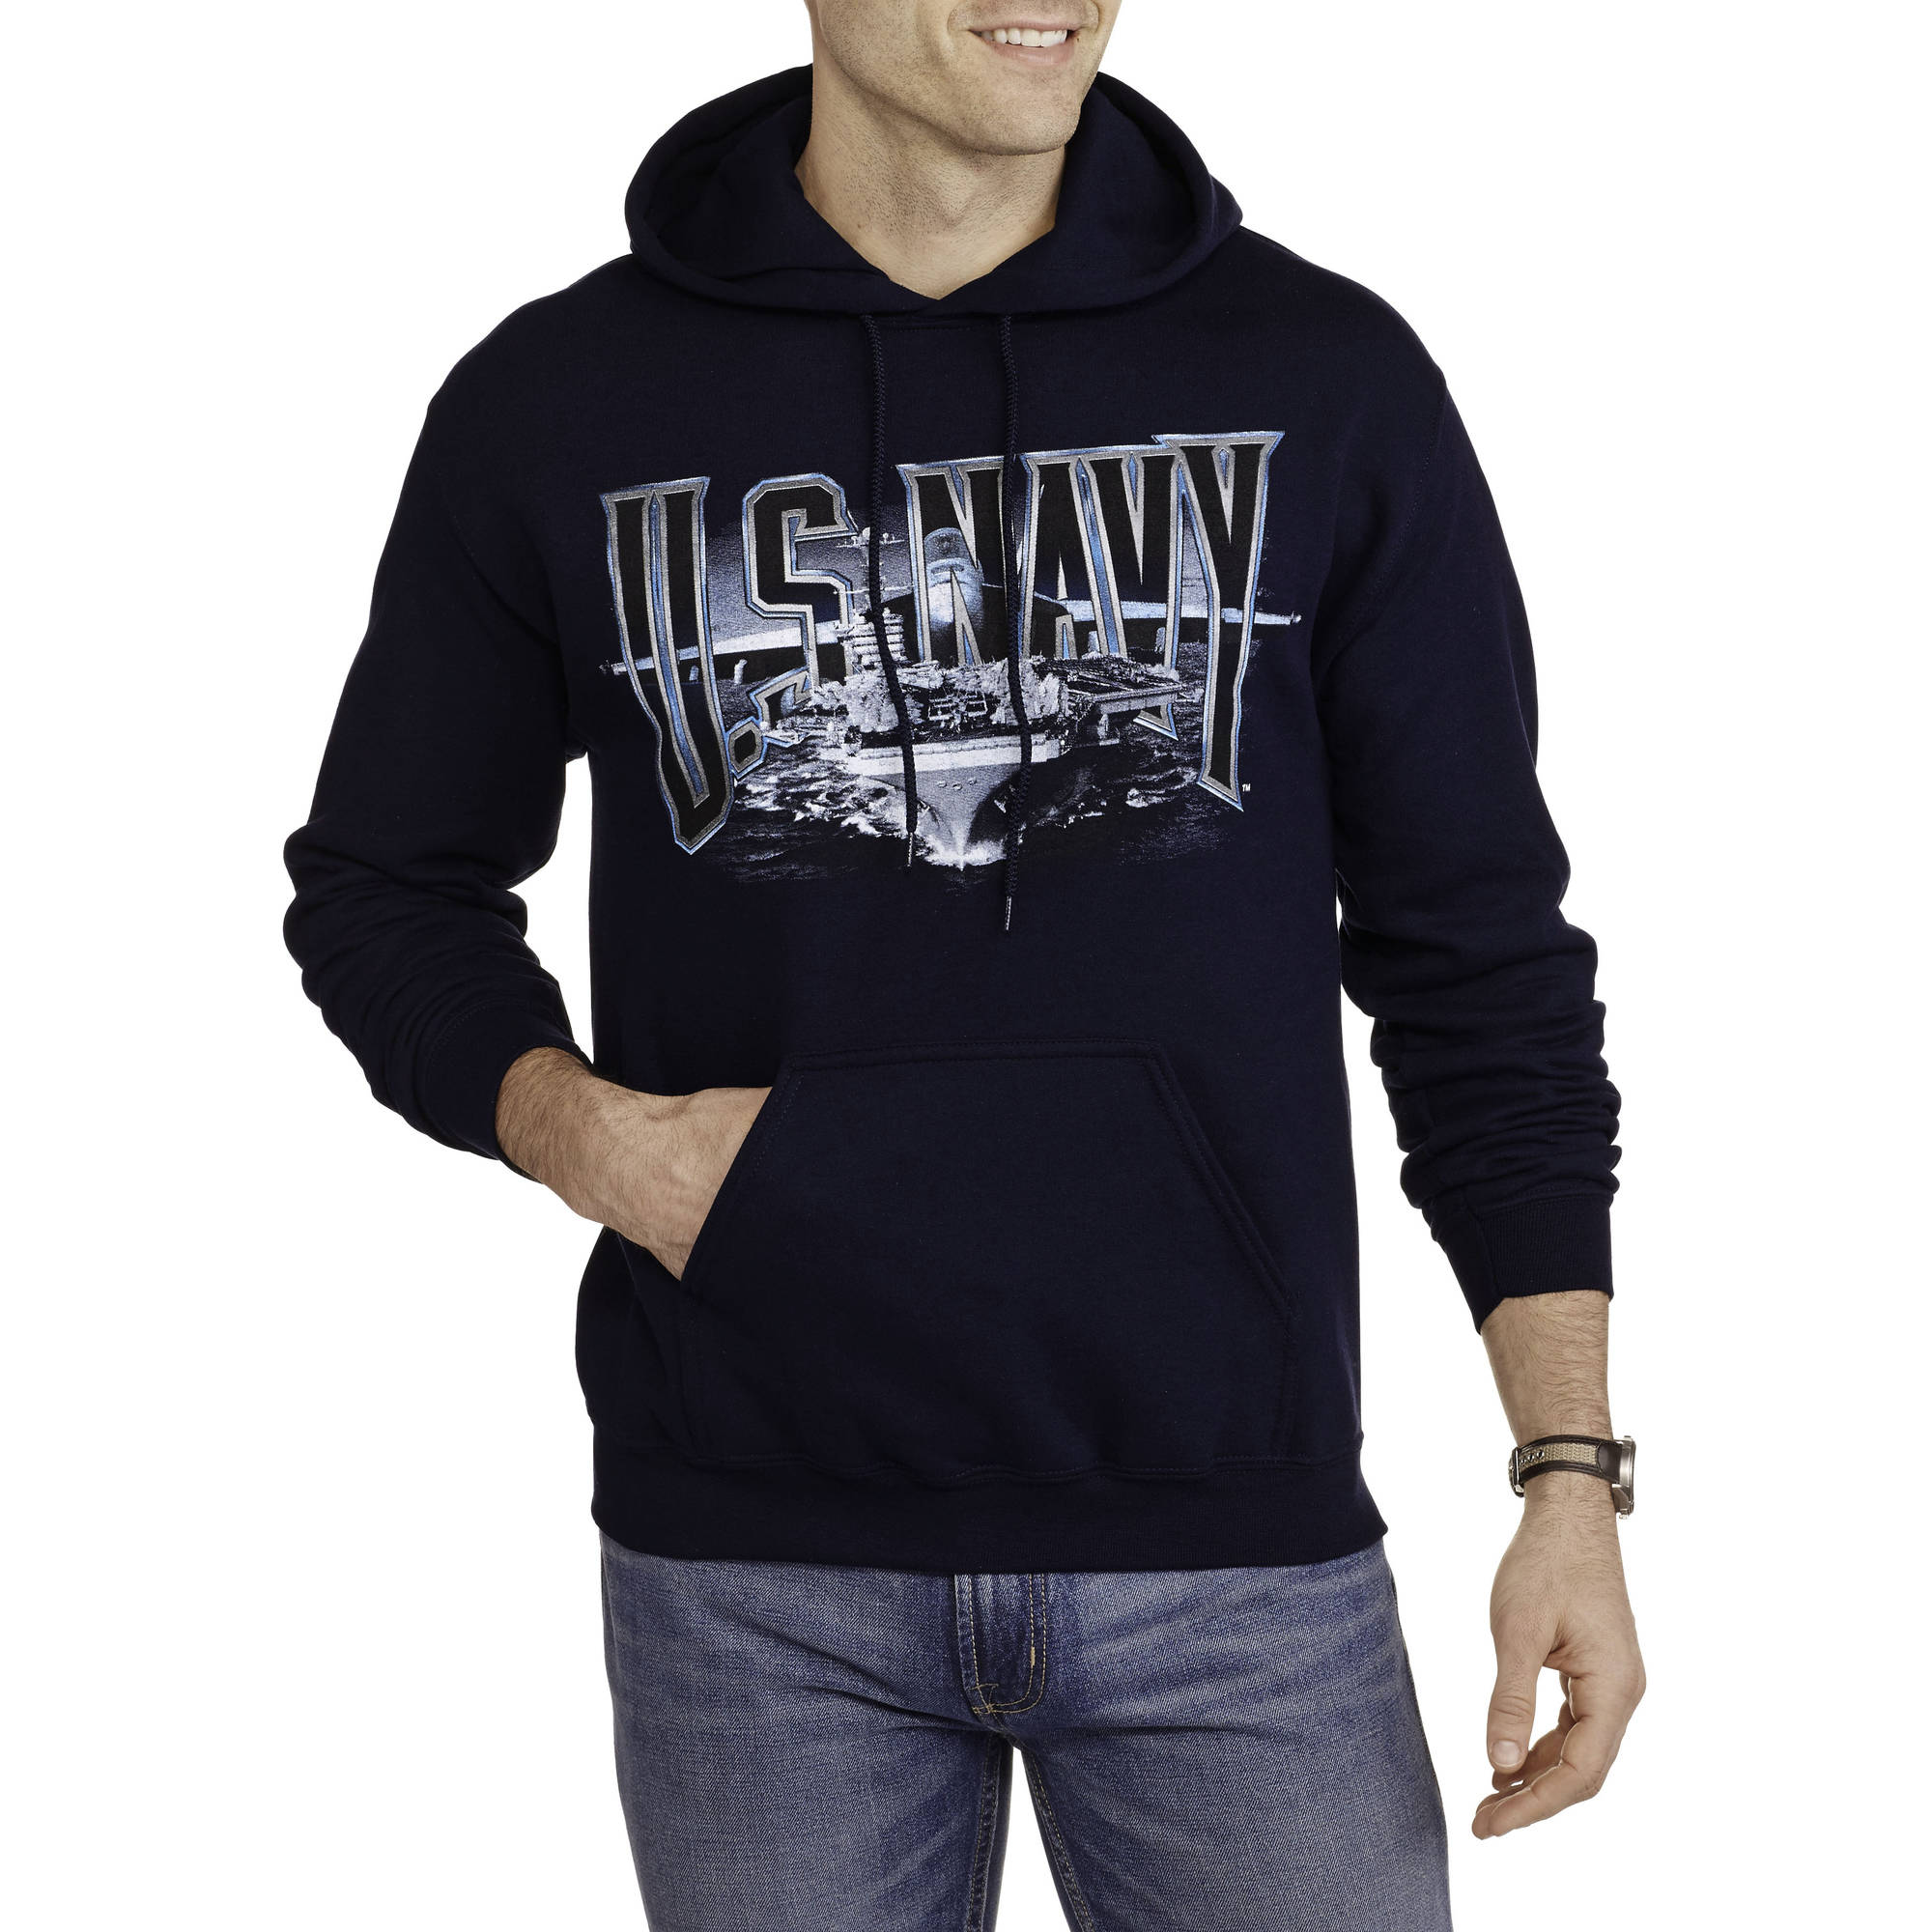 Big Men's Military Officially Licensed Fleece Action Hoodie, 2XL